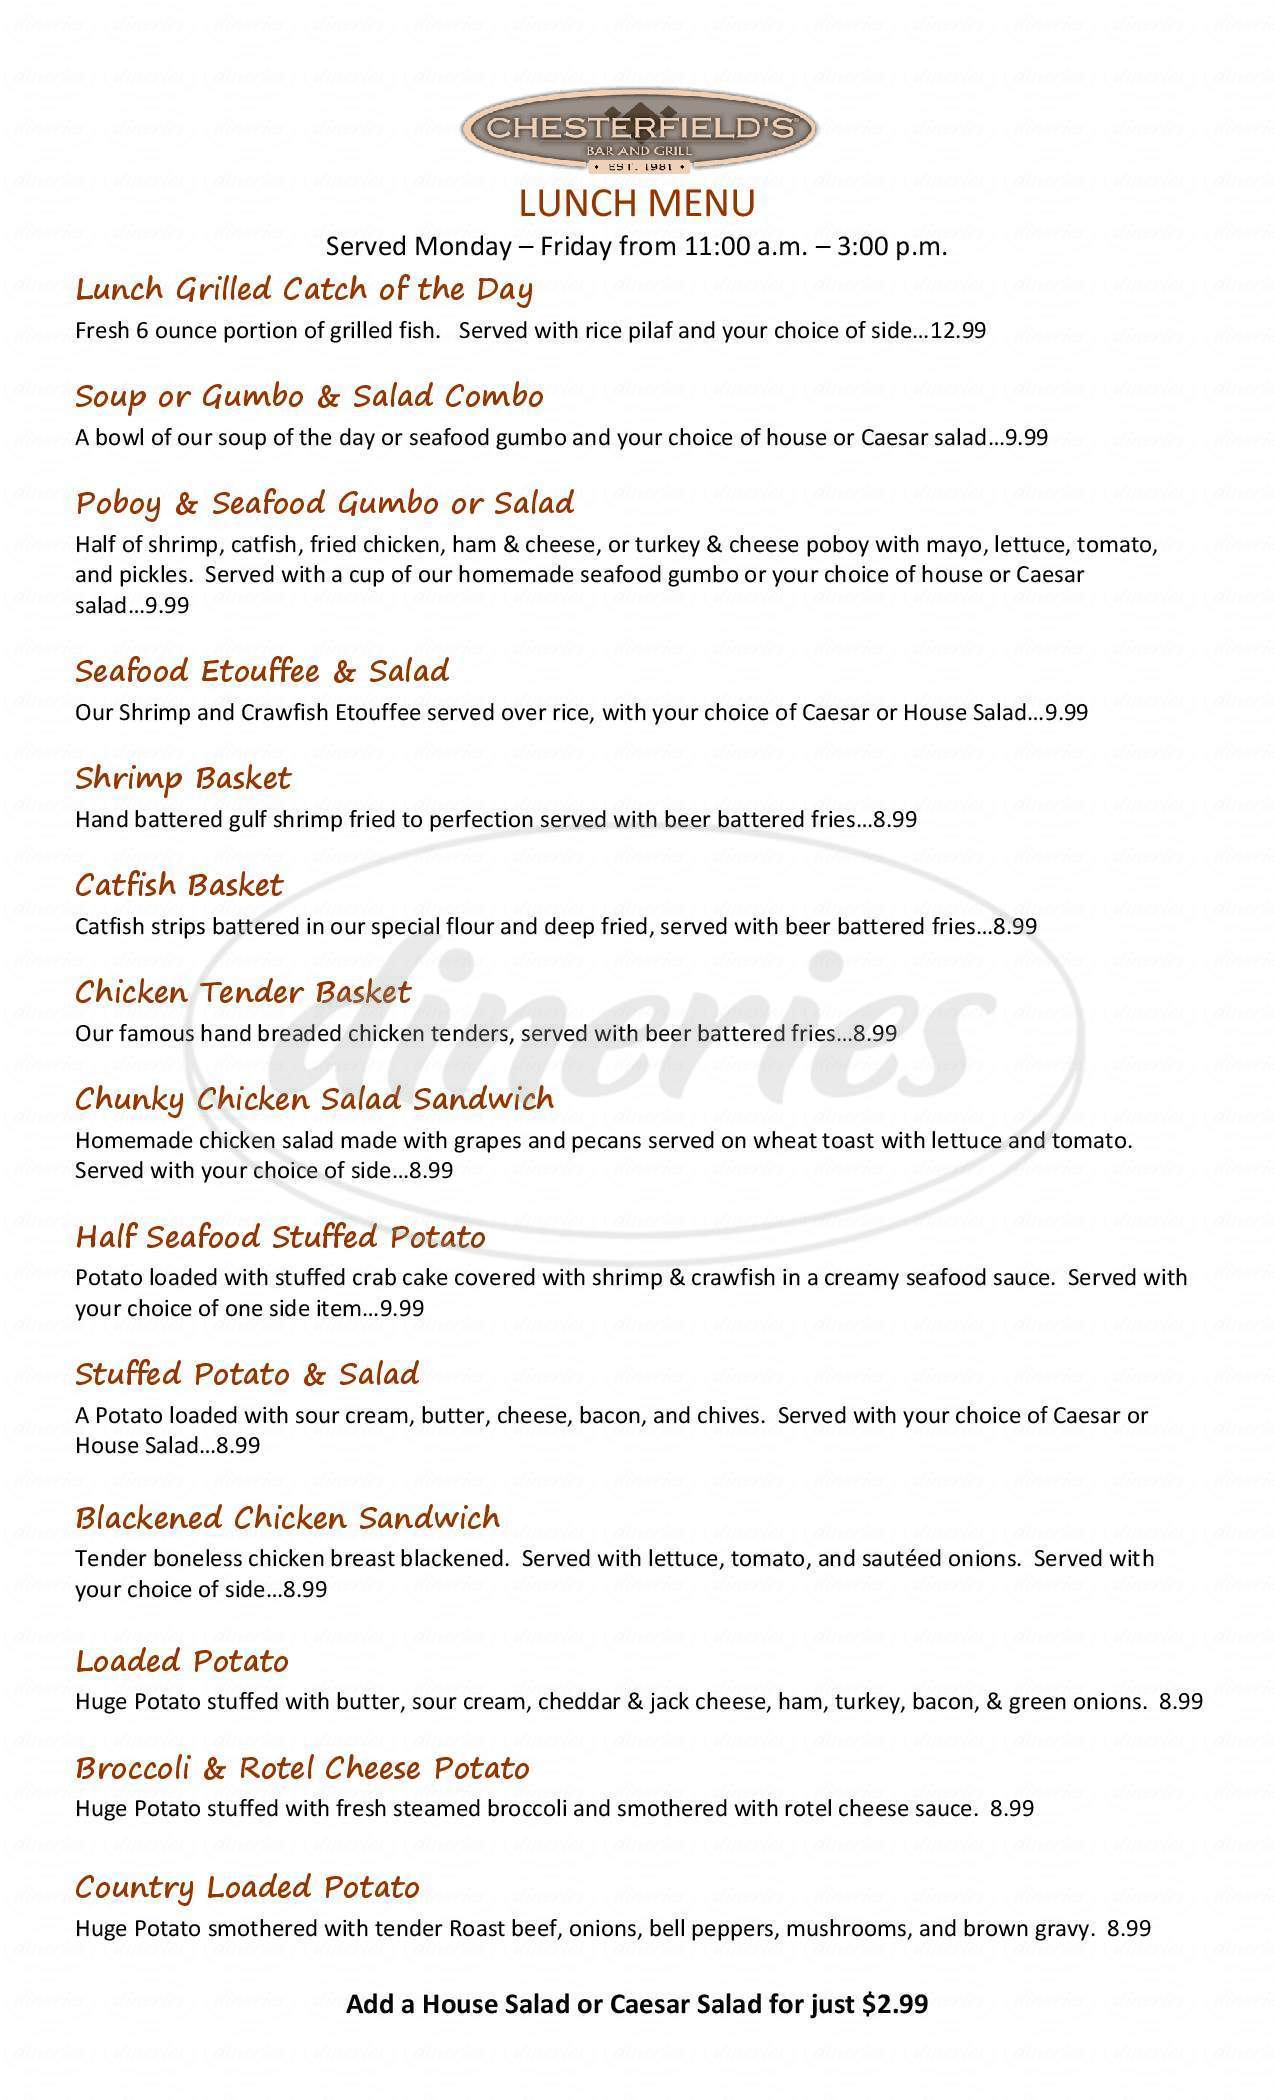 menu for Chesterfields